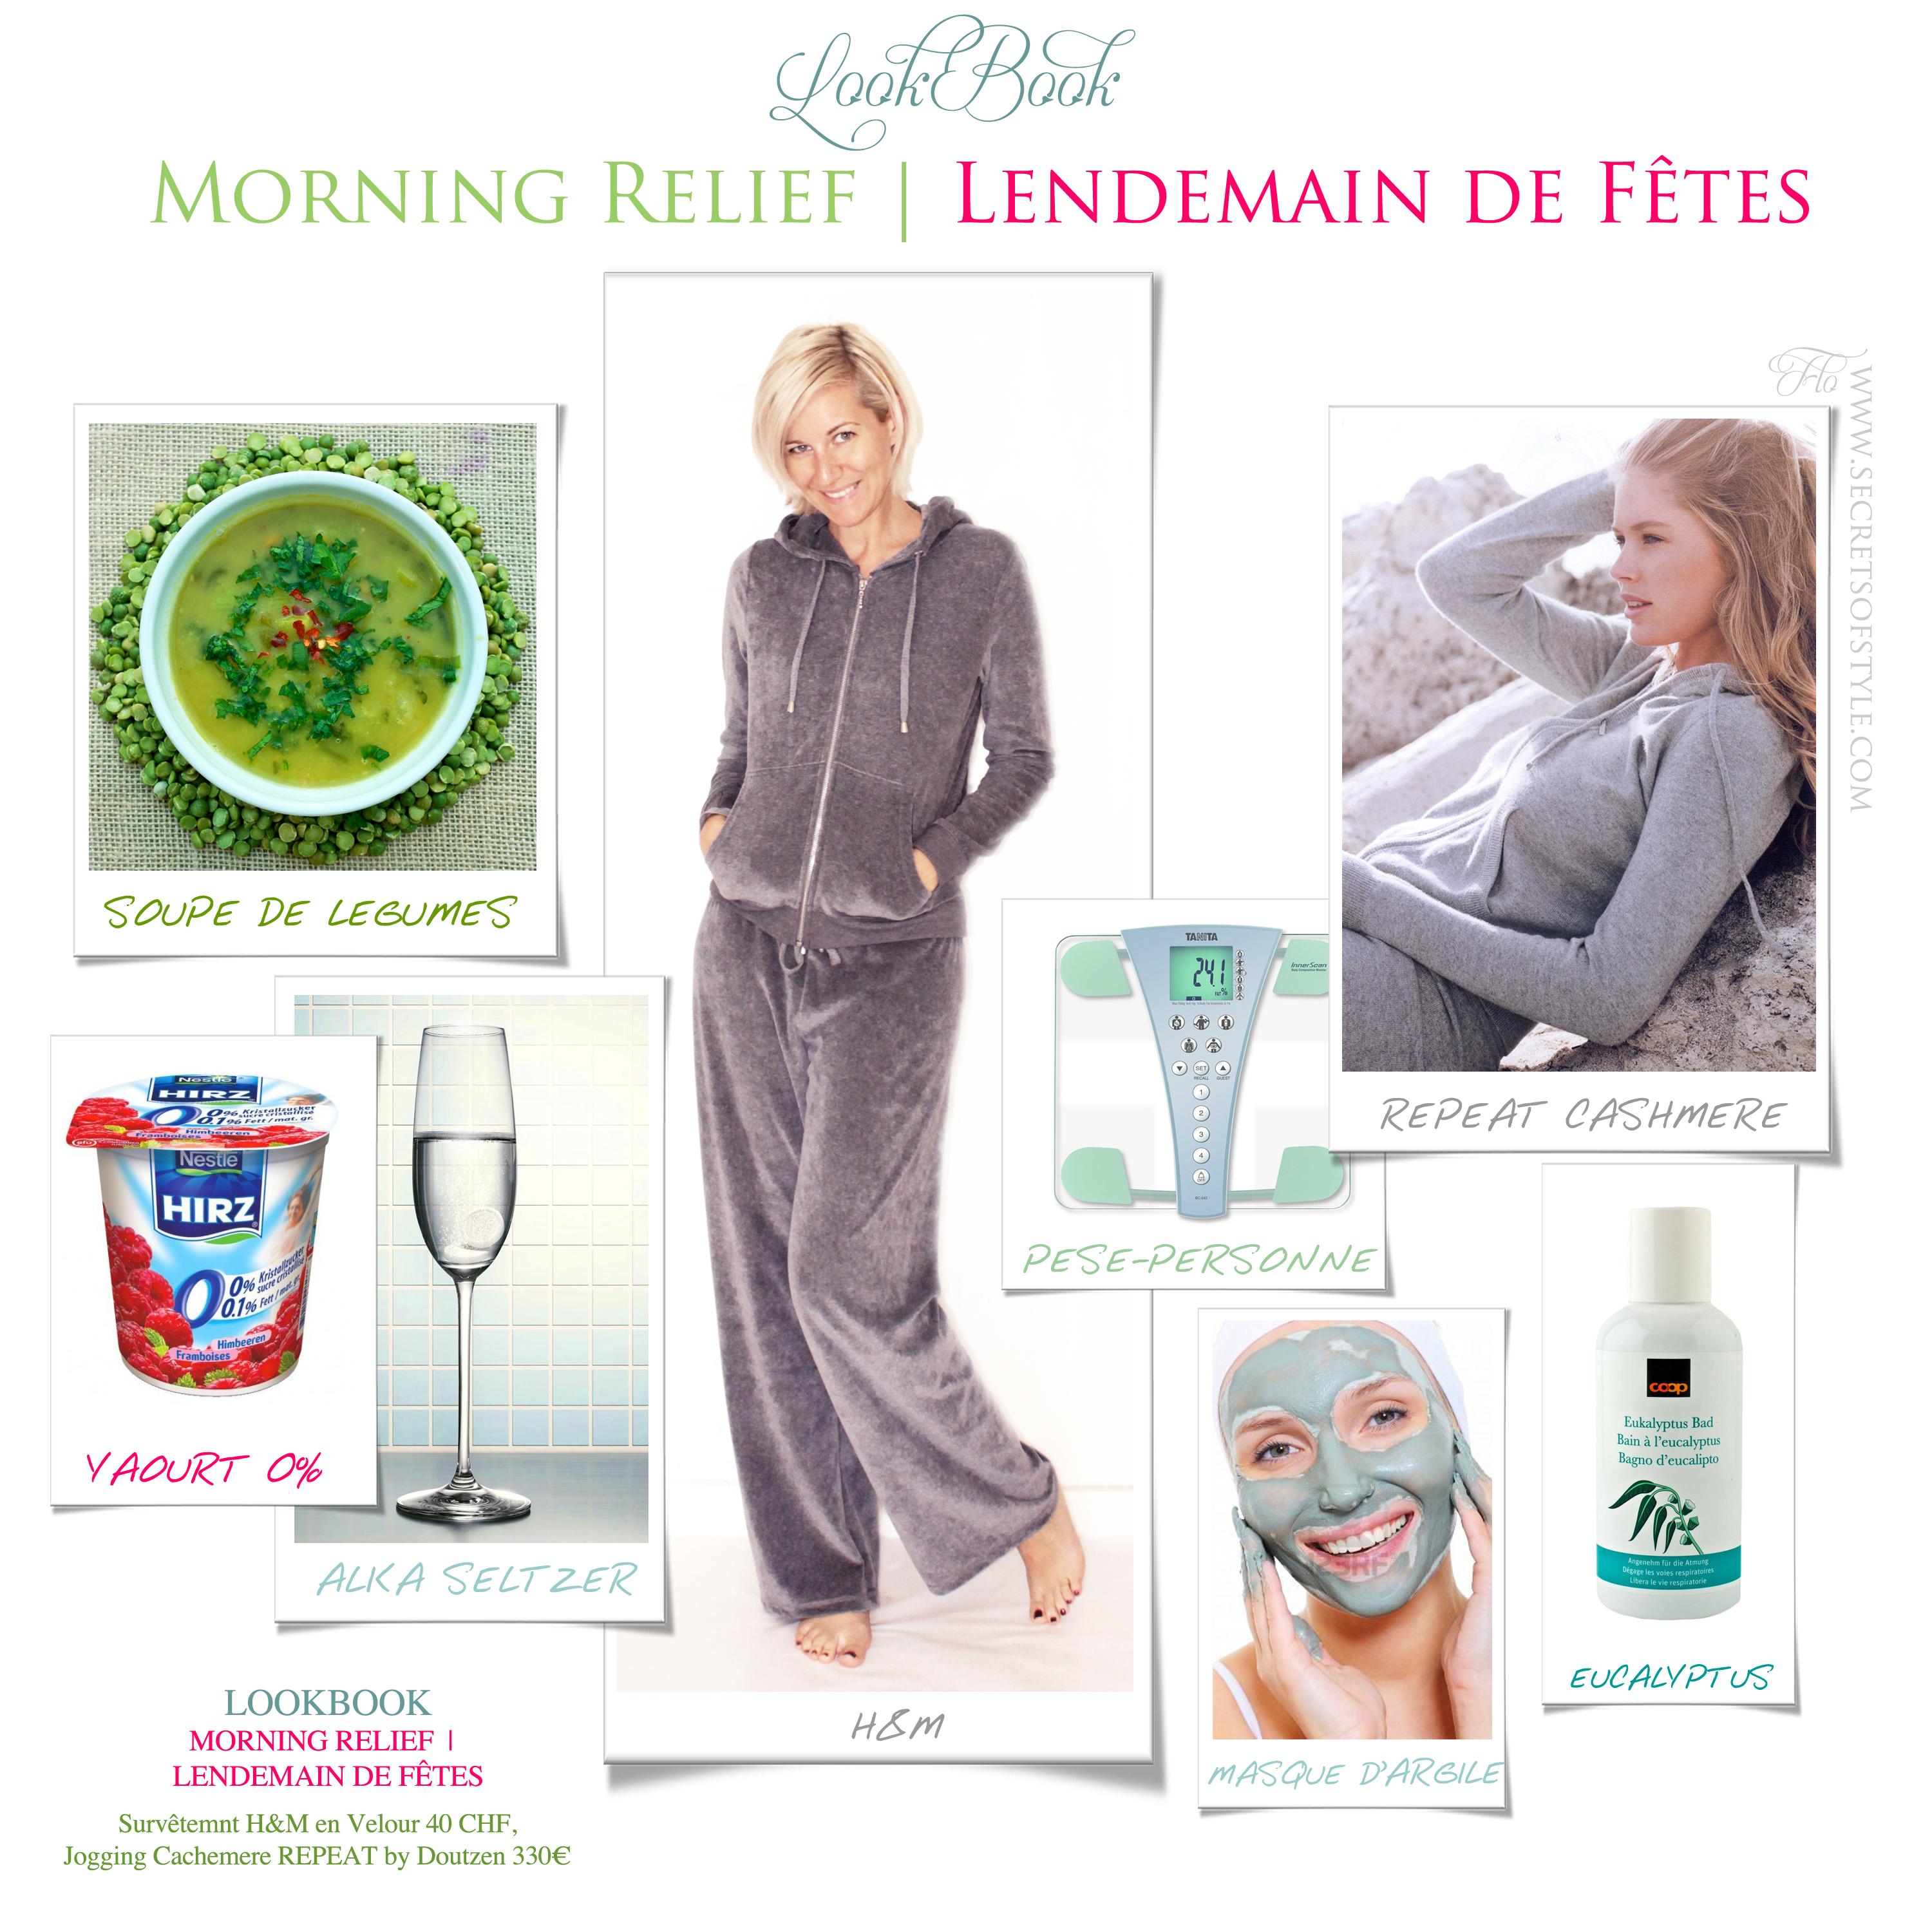 LookBook Morning Relief | Lendemain de Fêtes